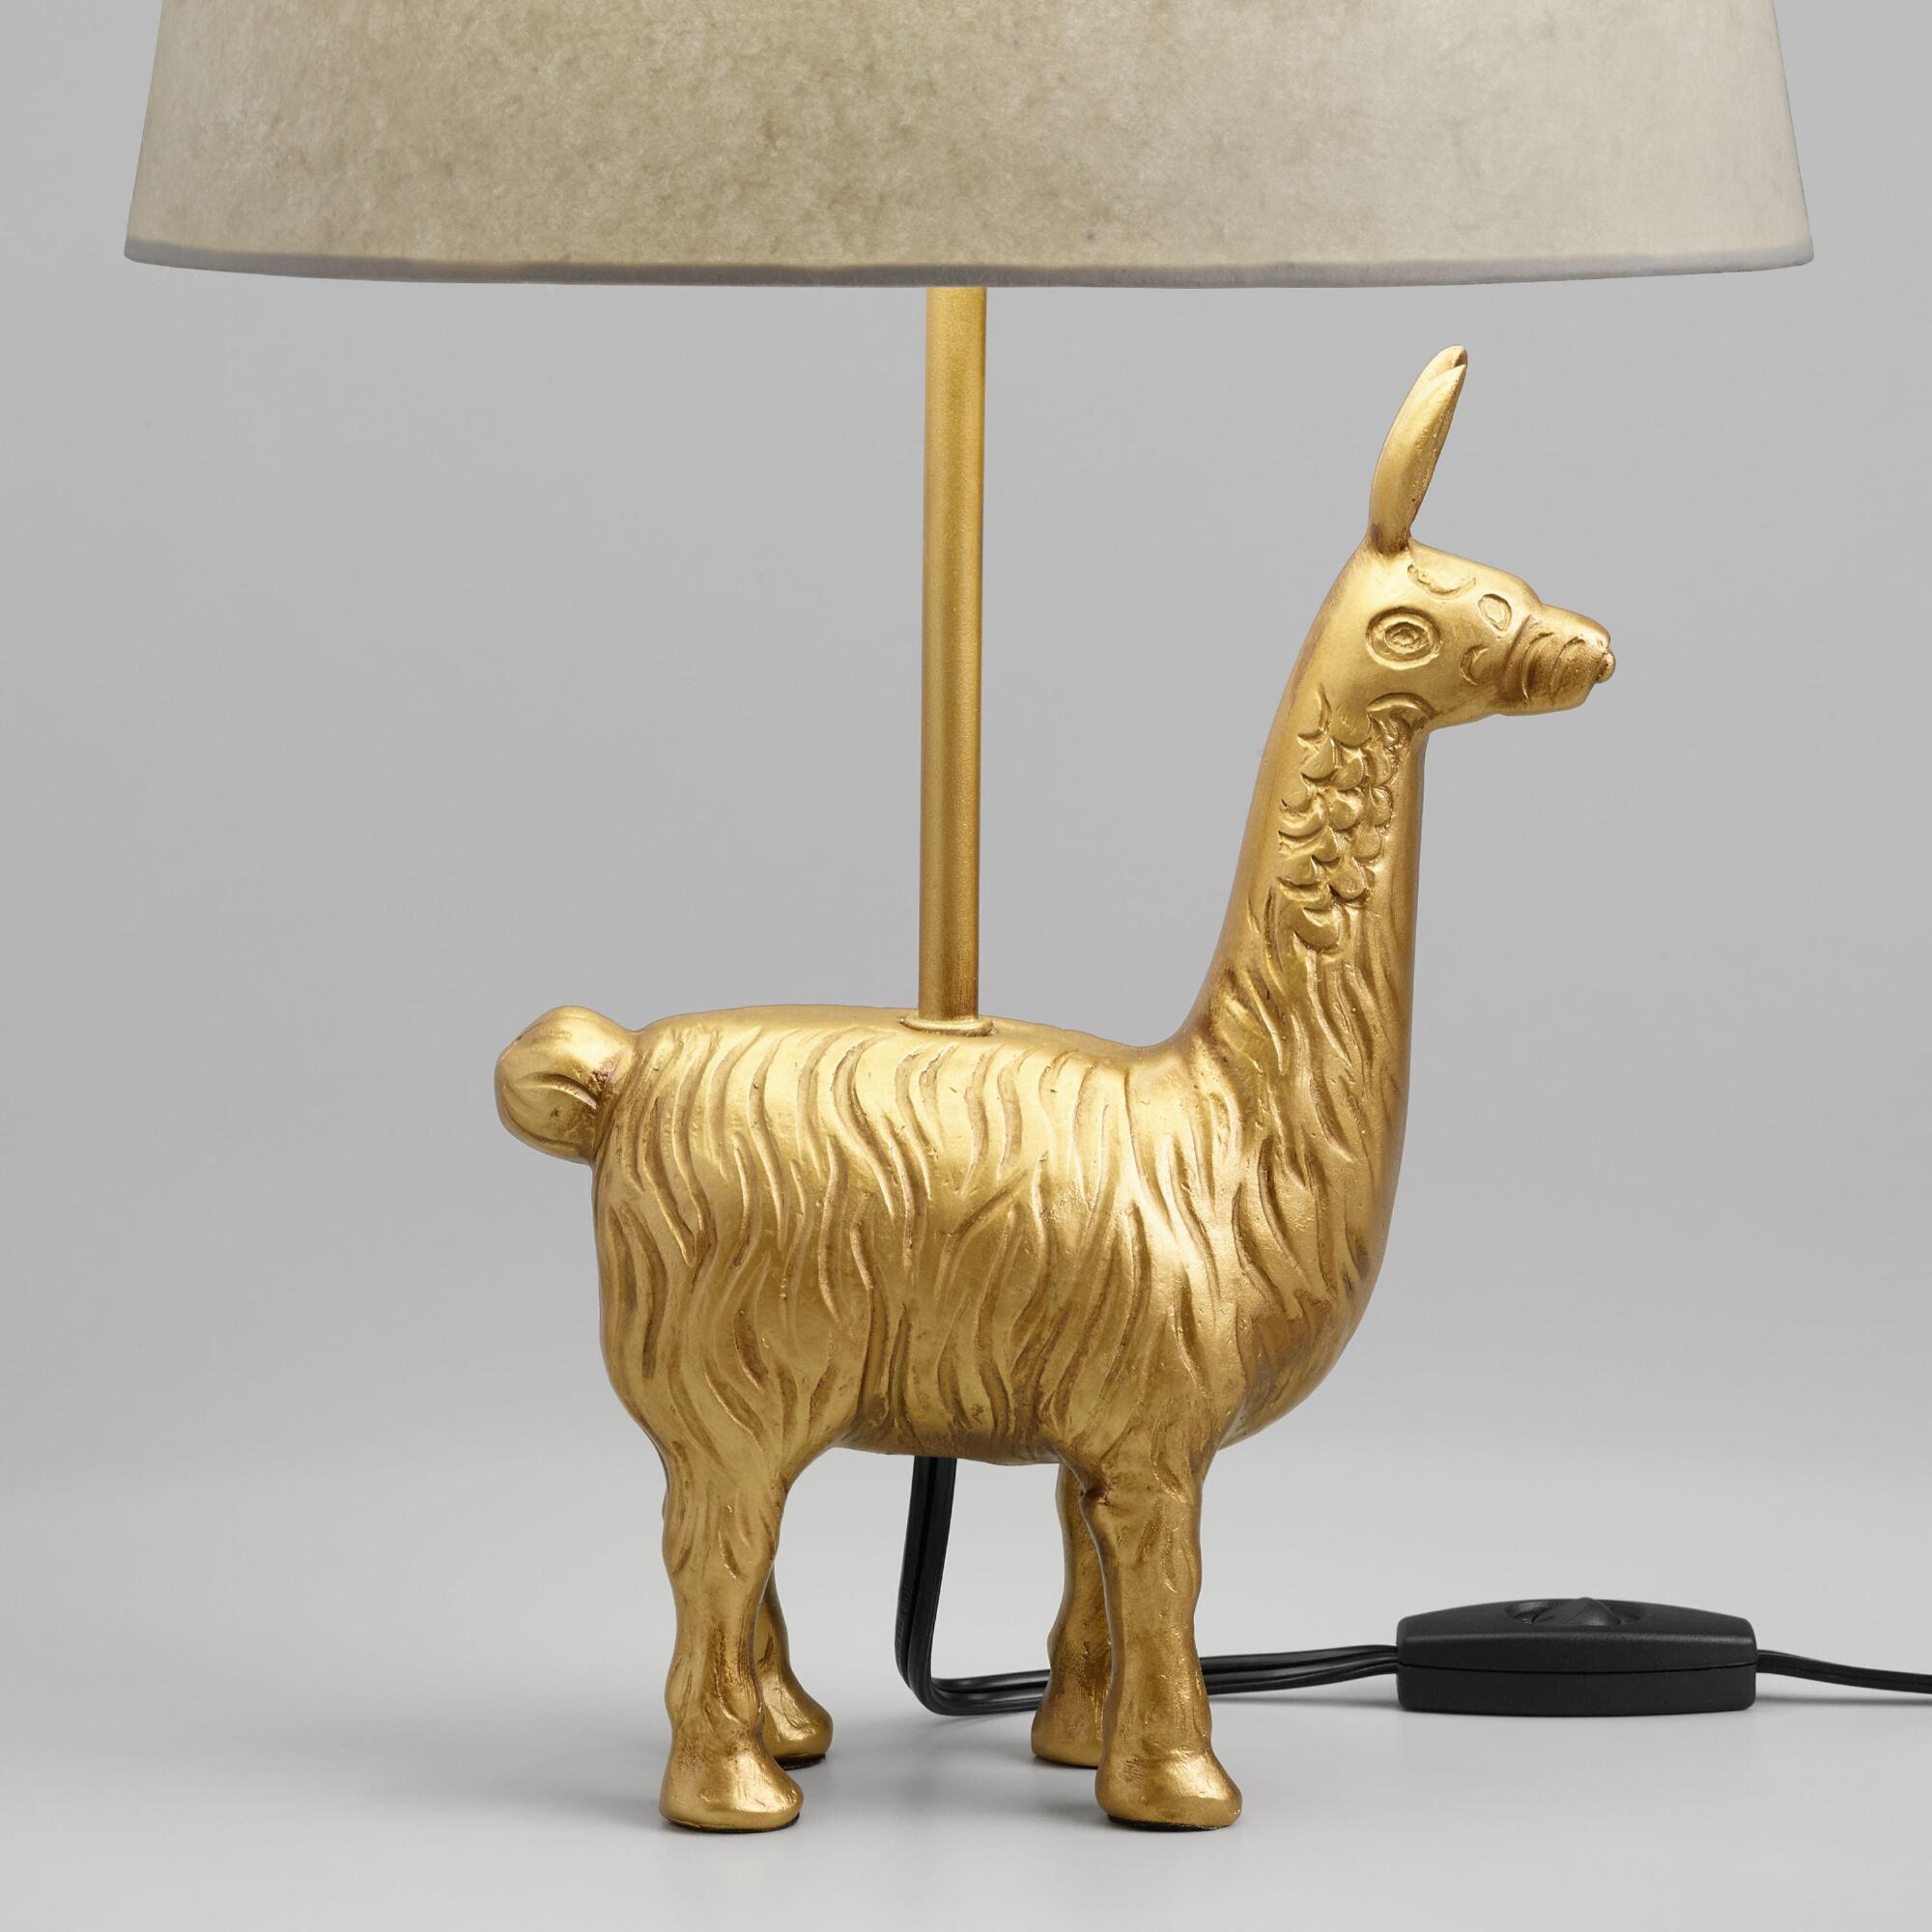 accent lighting unique table lamps world market iipsrv fcgi miniature gold llama lamp base rectangular nesting tables outdoor storage buffet dark brown side steel coffee shaped